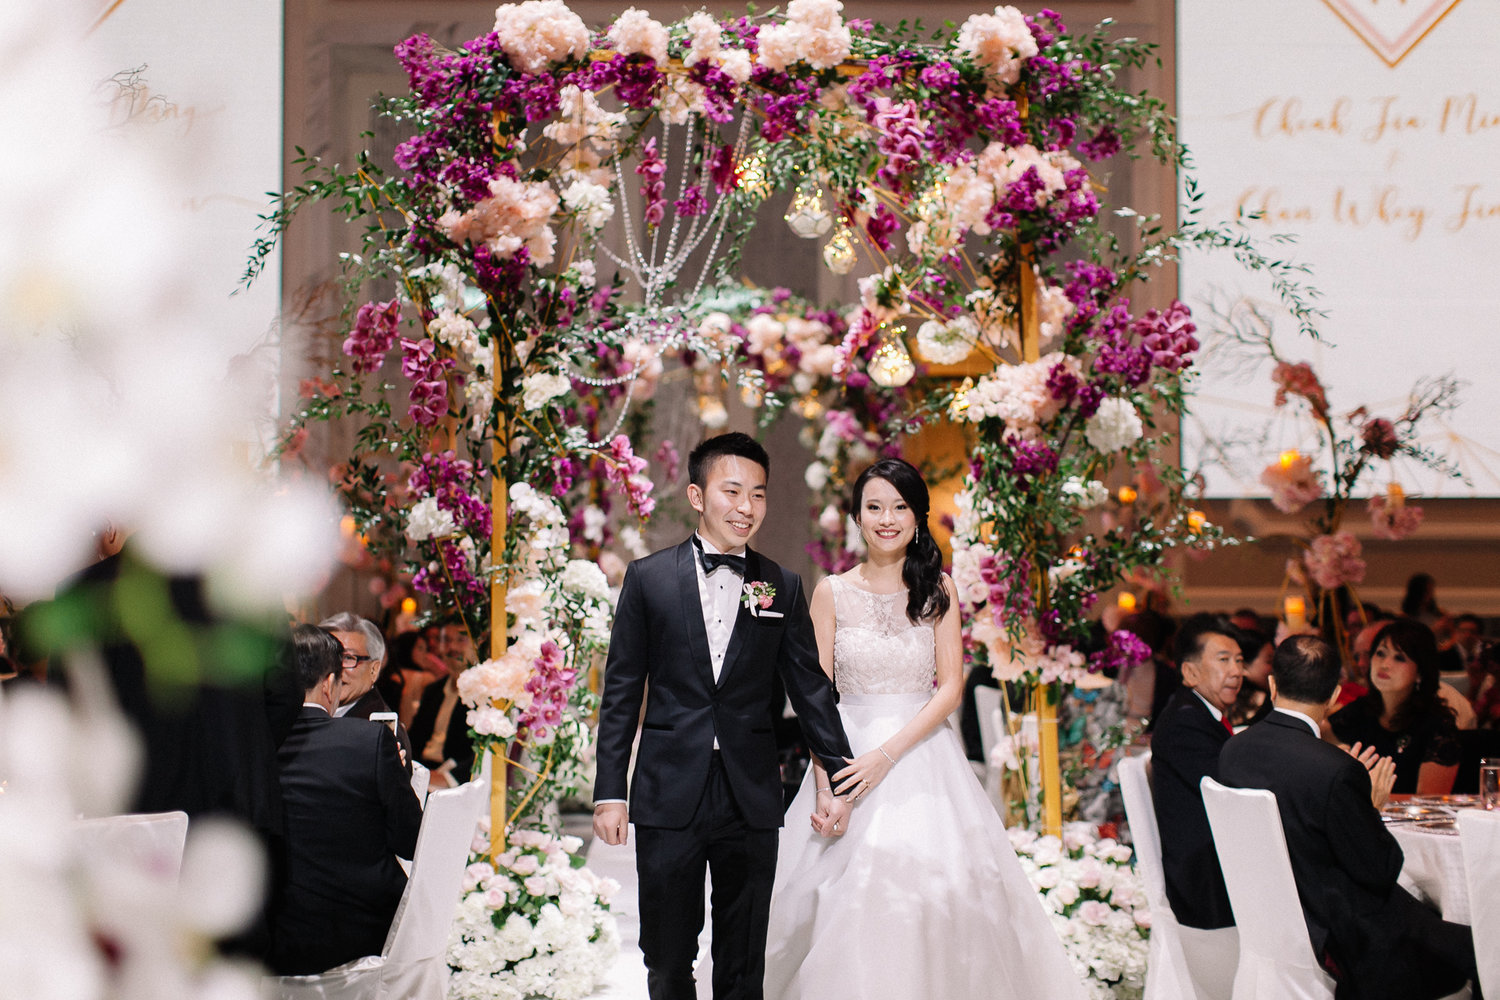 St regis kl wedding jia ming whey jinns wedding day st regis st regis kl wedding jia ming whey jinns wedding day st regis kuala junglespirit Image collections